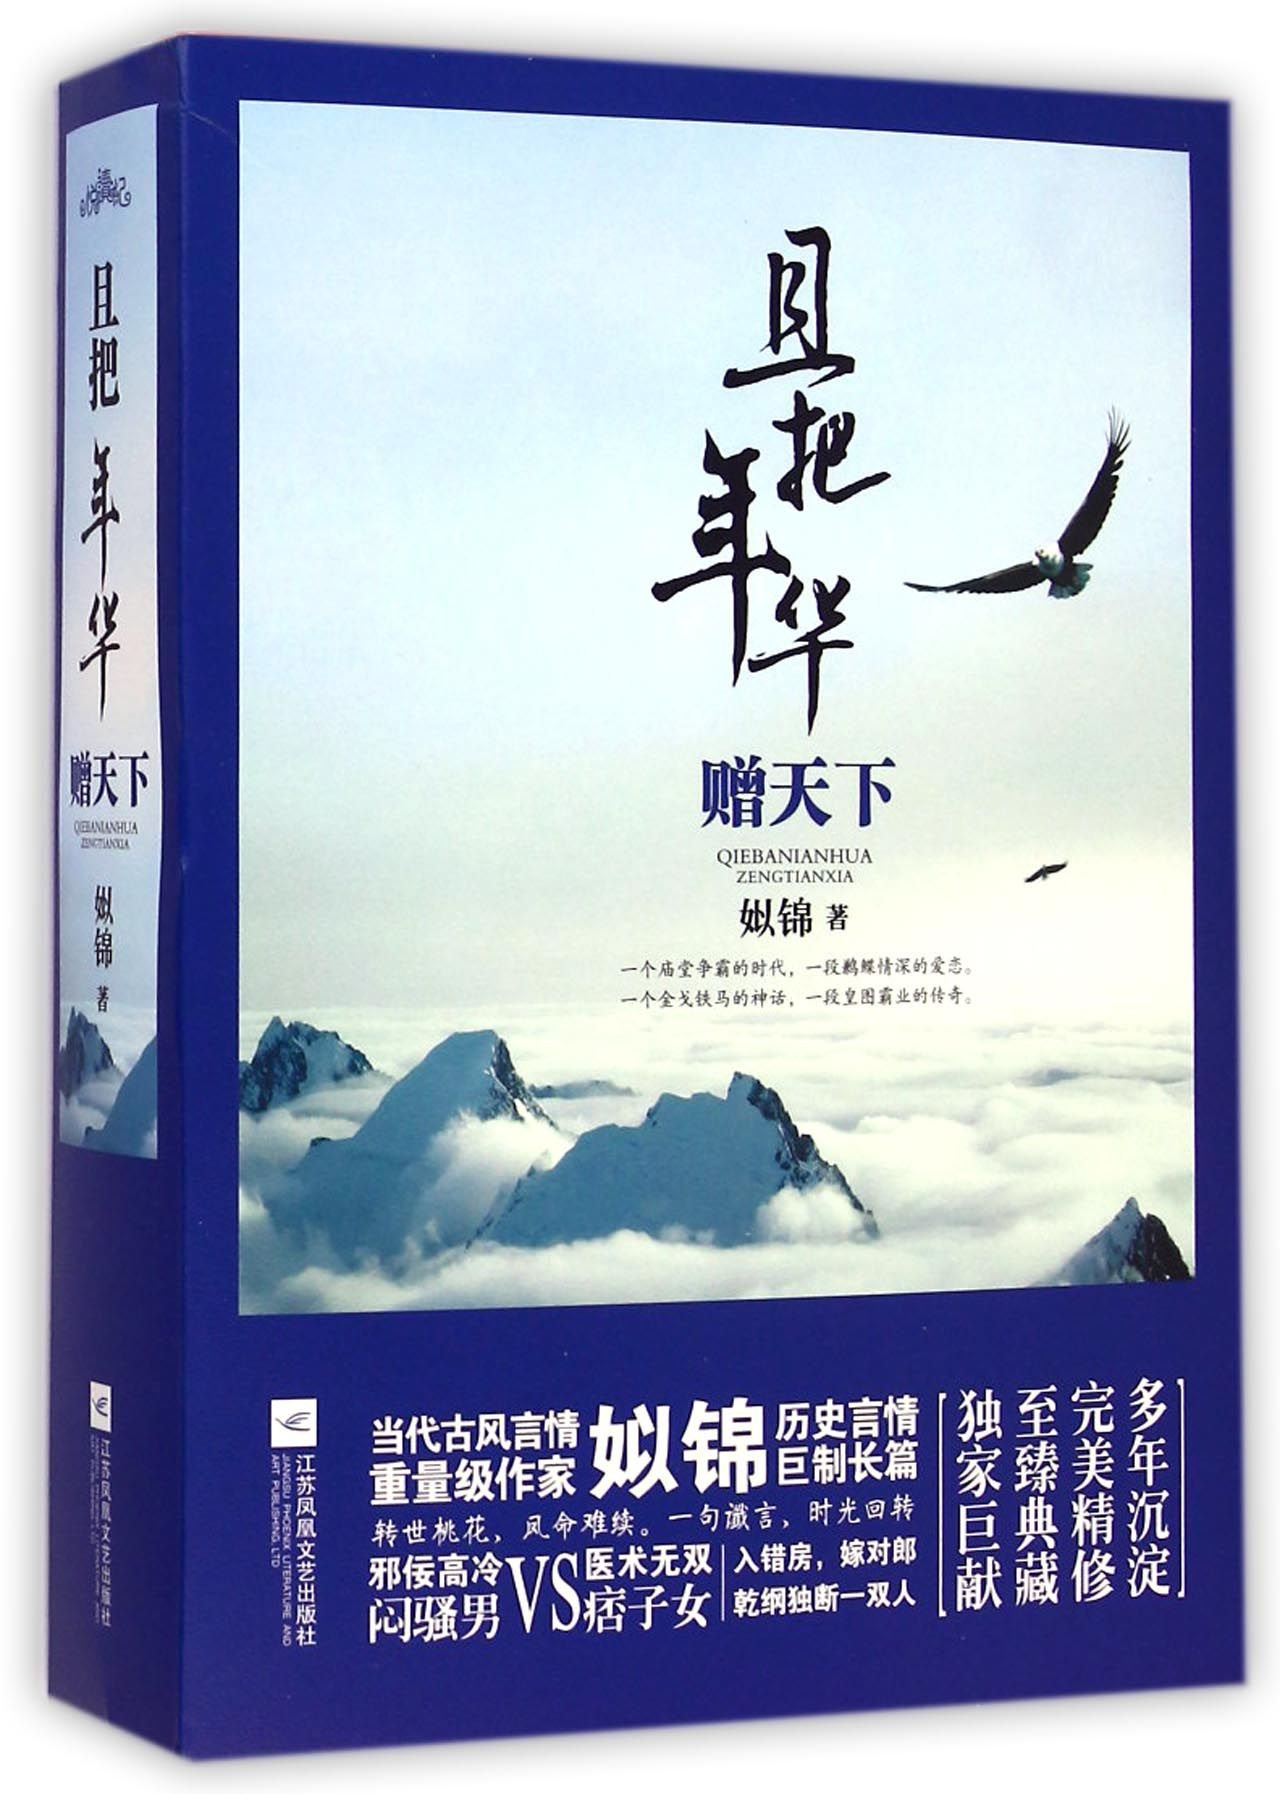 Download Love and the gift of the world (in the lower volumes attached to the suit poster Q diagram)(Chinese Edition) PDF